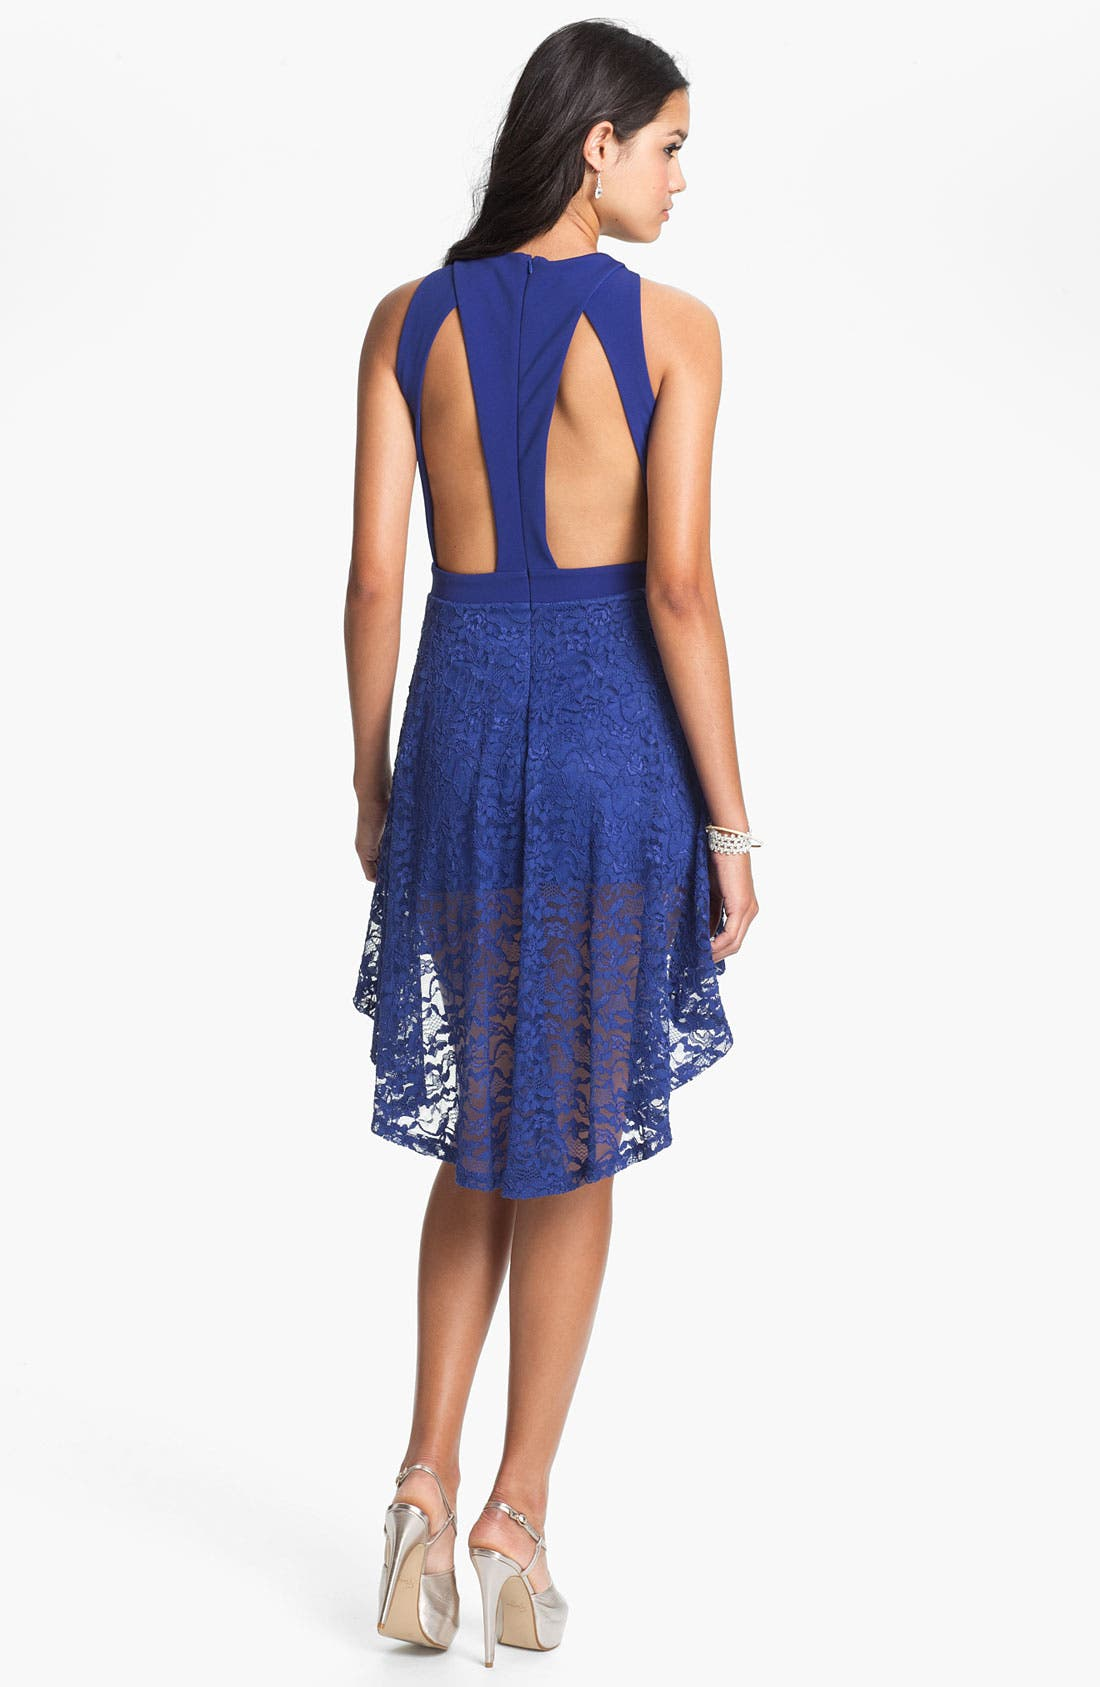 Alternate Image 1 Selected - Lush High/Low Lace Cutout Dress (Juniors)